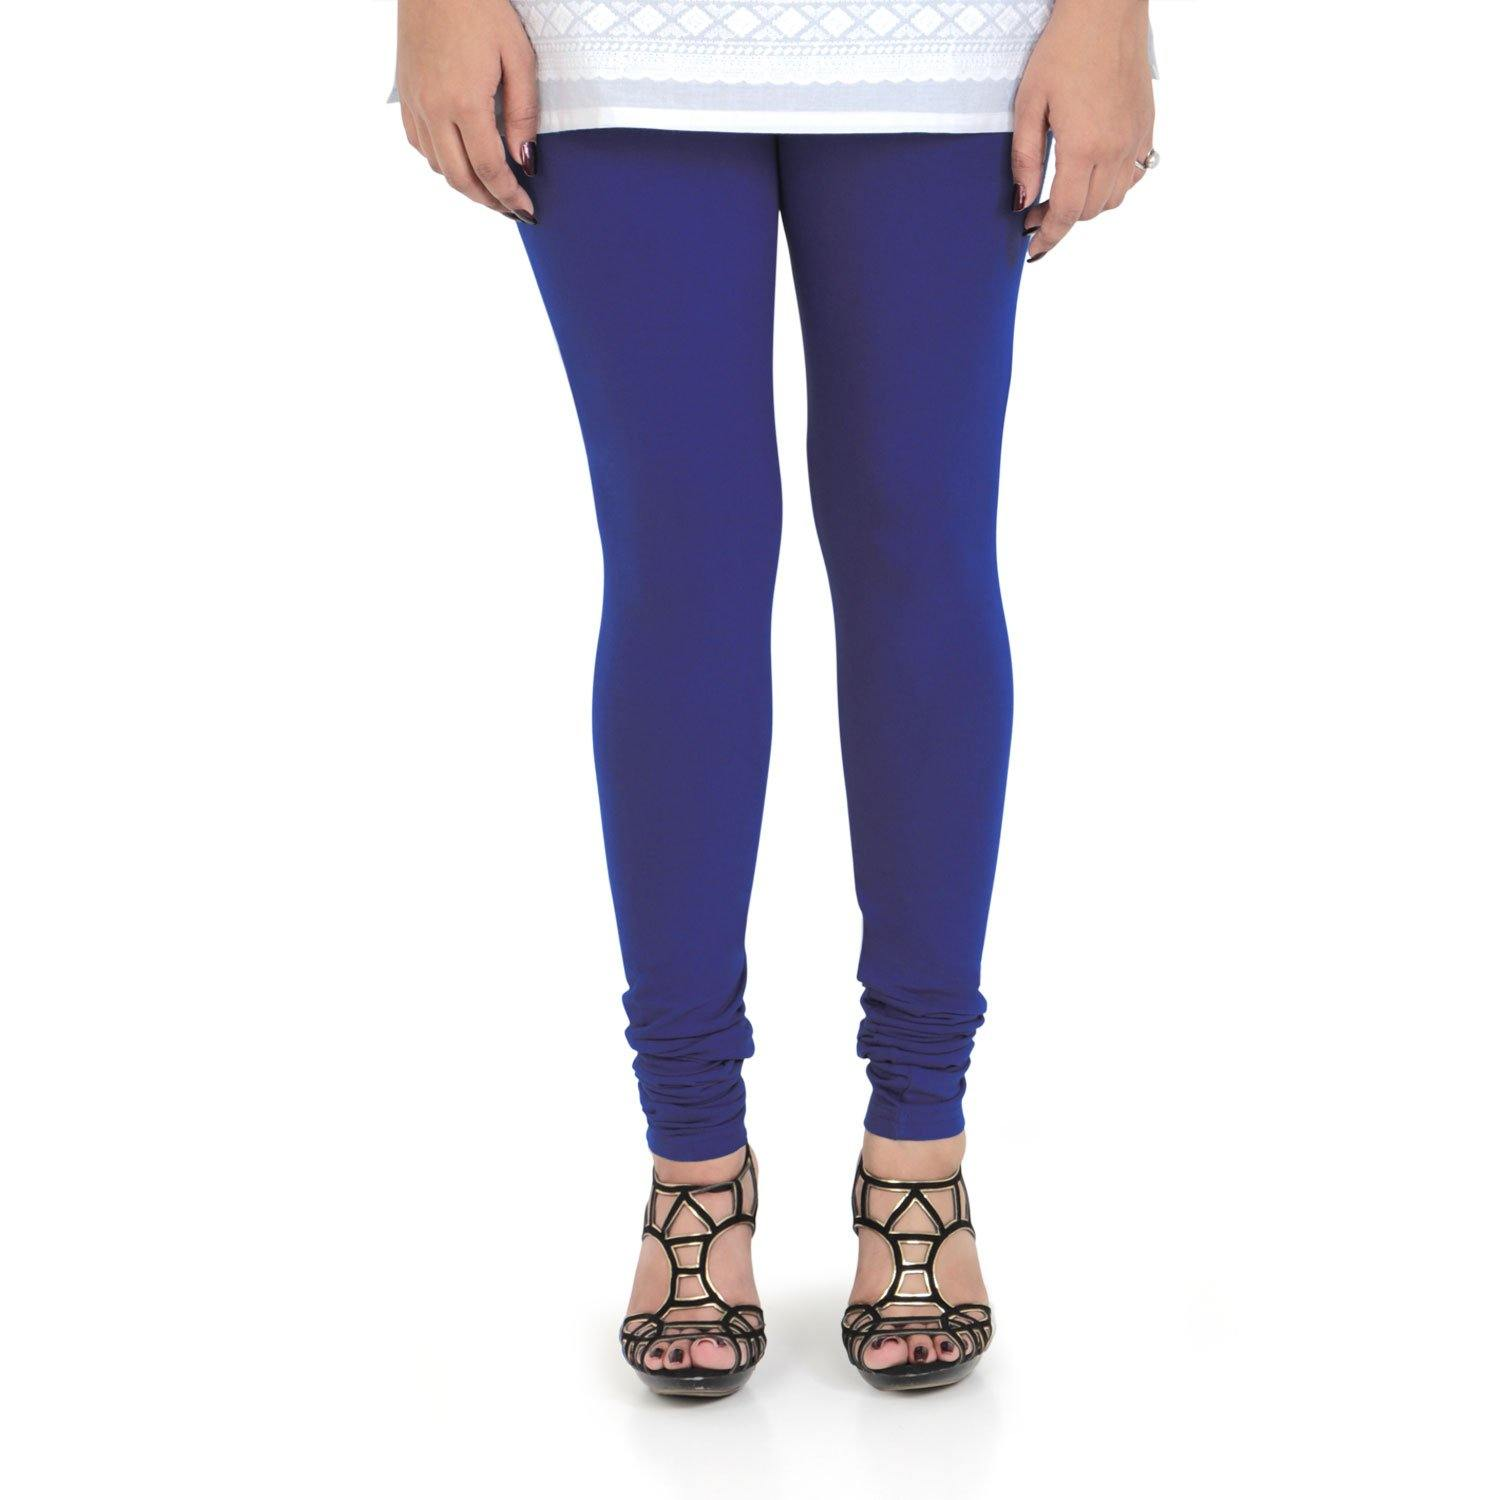 Vami Women's Cotton Stretchable Churidar Legging - Purple Heart